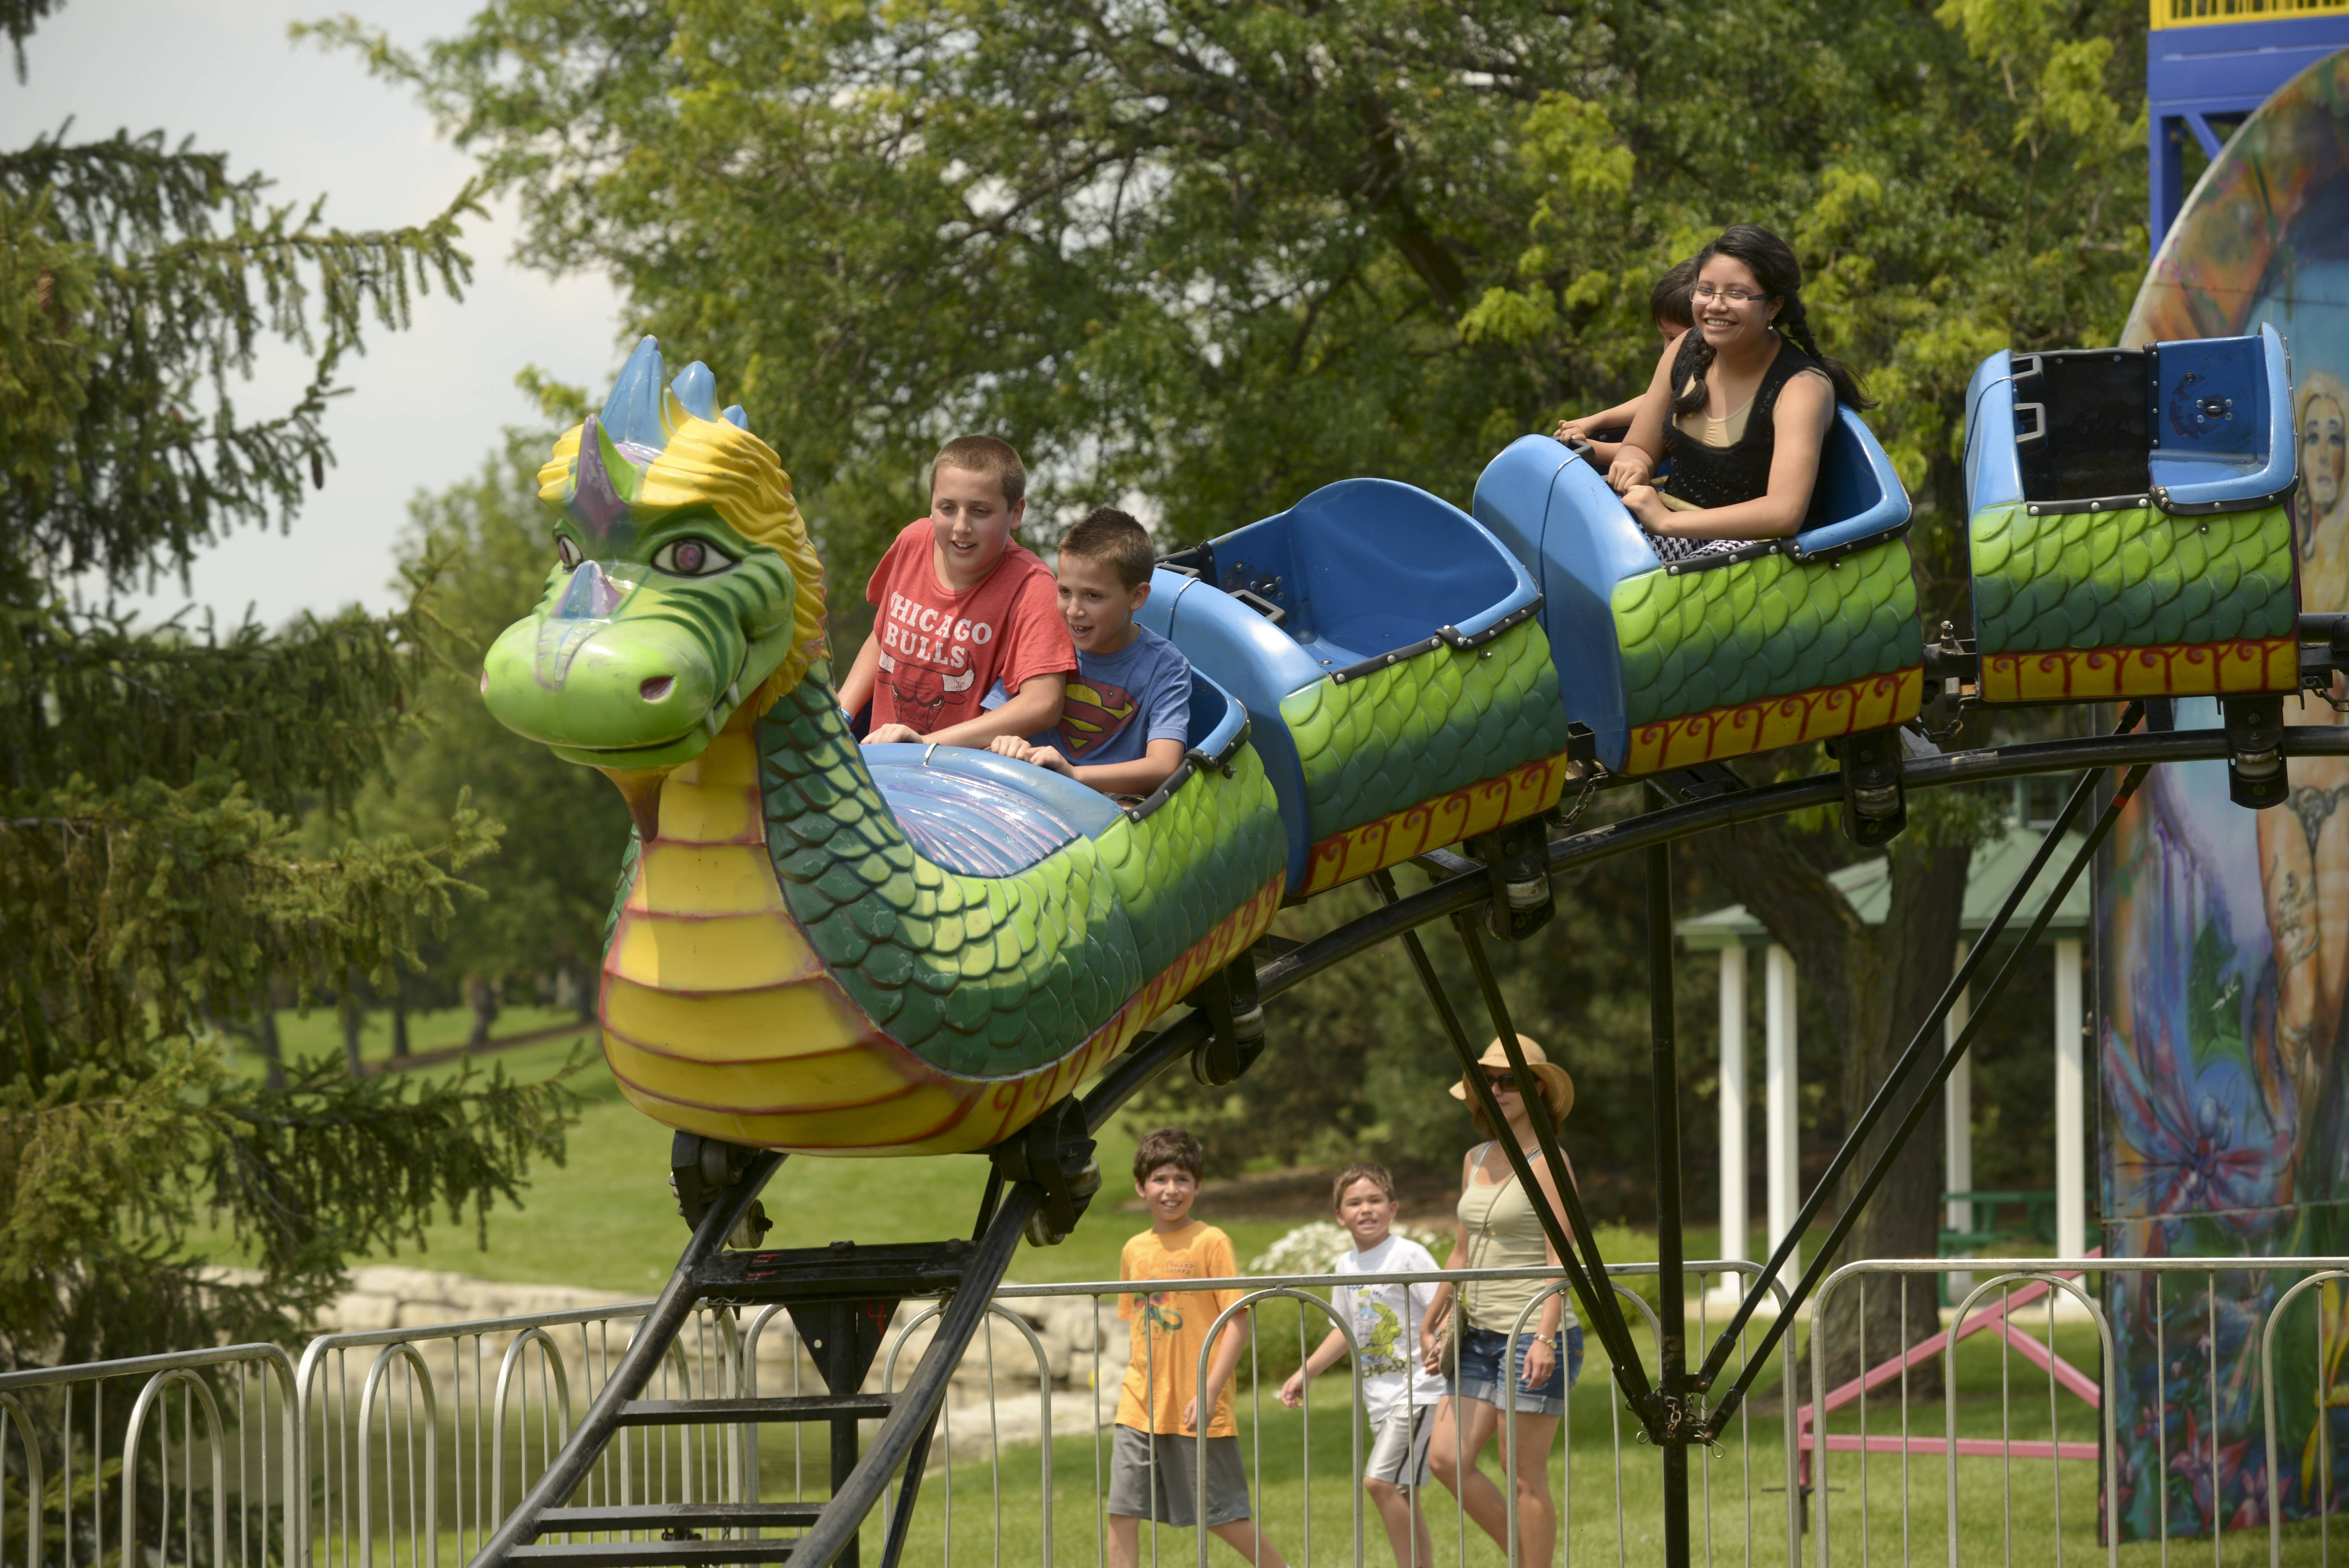 The Dragon Wagon zooms up and down Saturday at the Vernon Hills Summer Celebration.